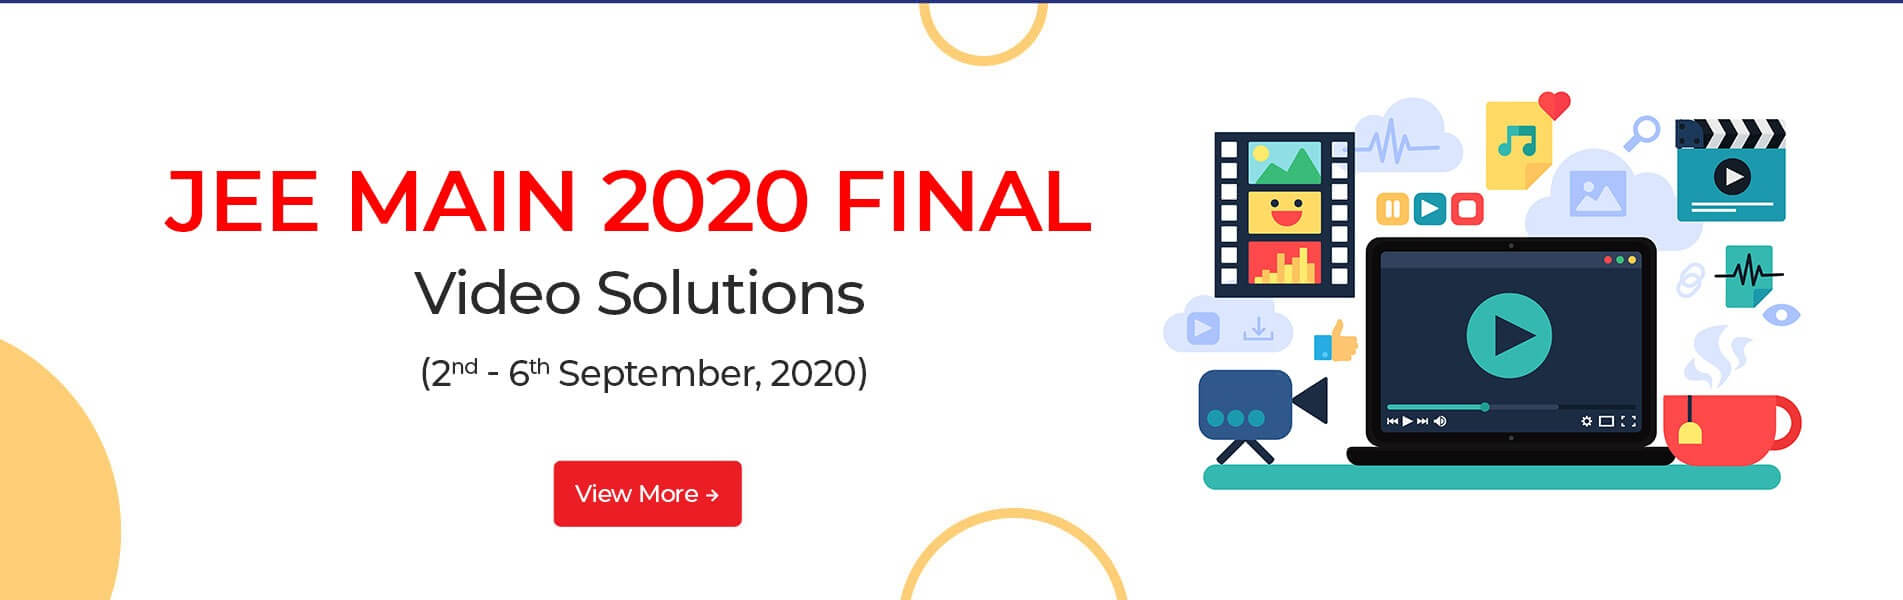 JEE Main 2020 Final Video Solutions